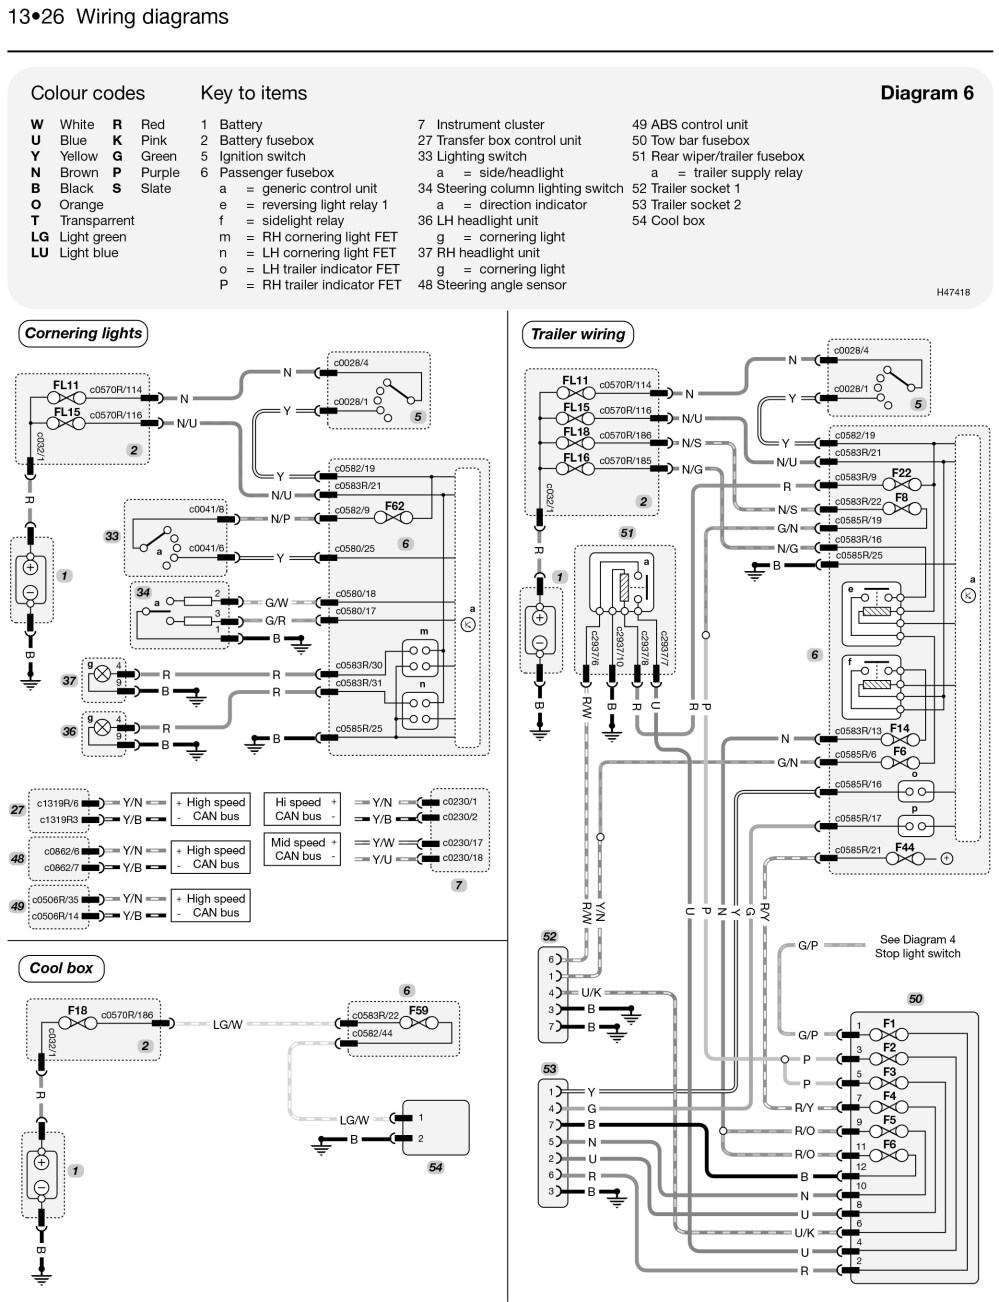 medium resolution of land rover discovery wiring schematics wiring diagrams scematic wiring range rover sport land rover discovery 3 wiring diagram pdf